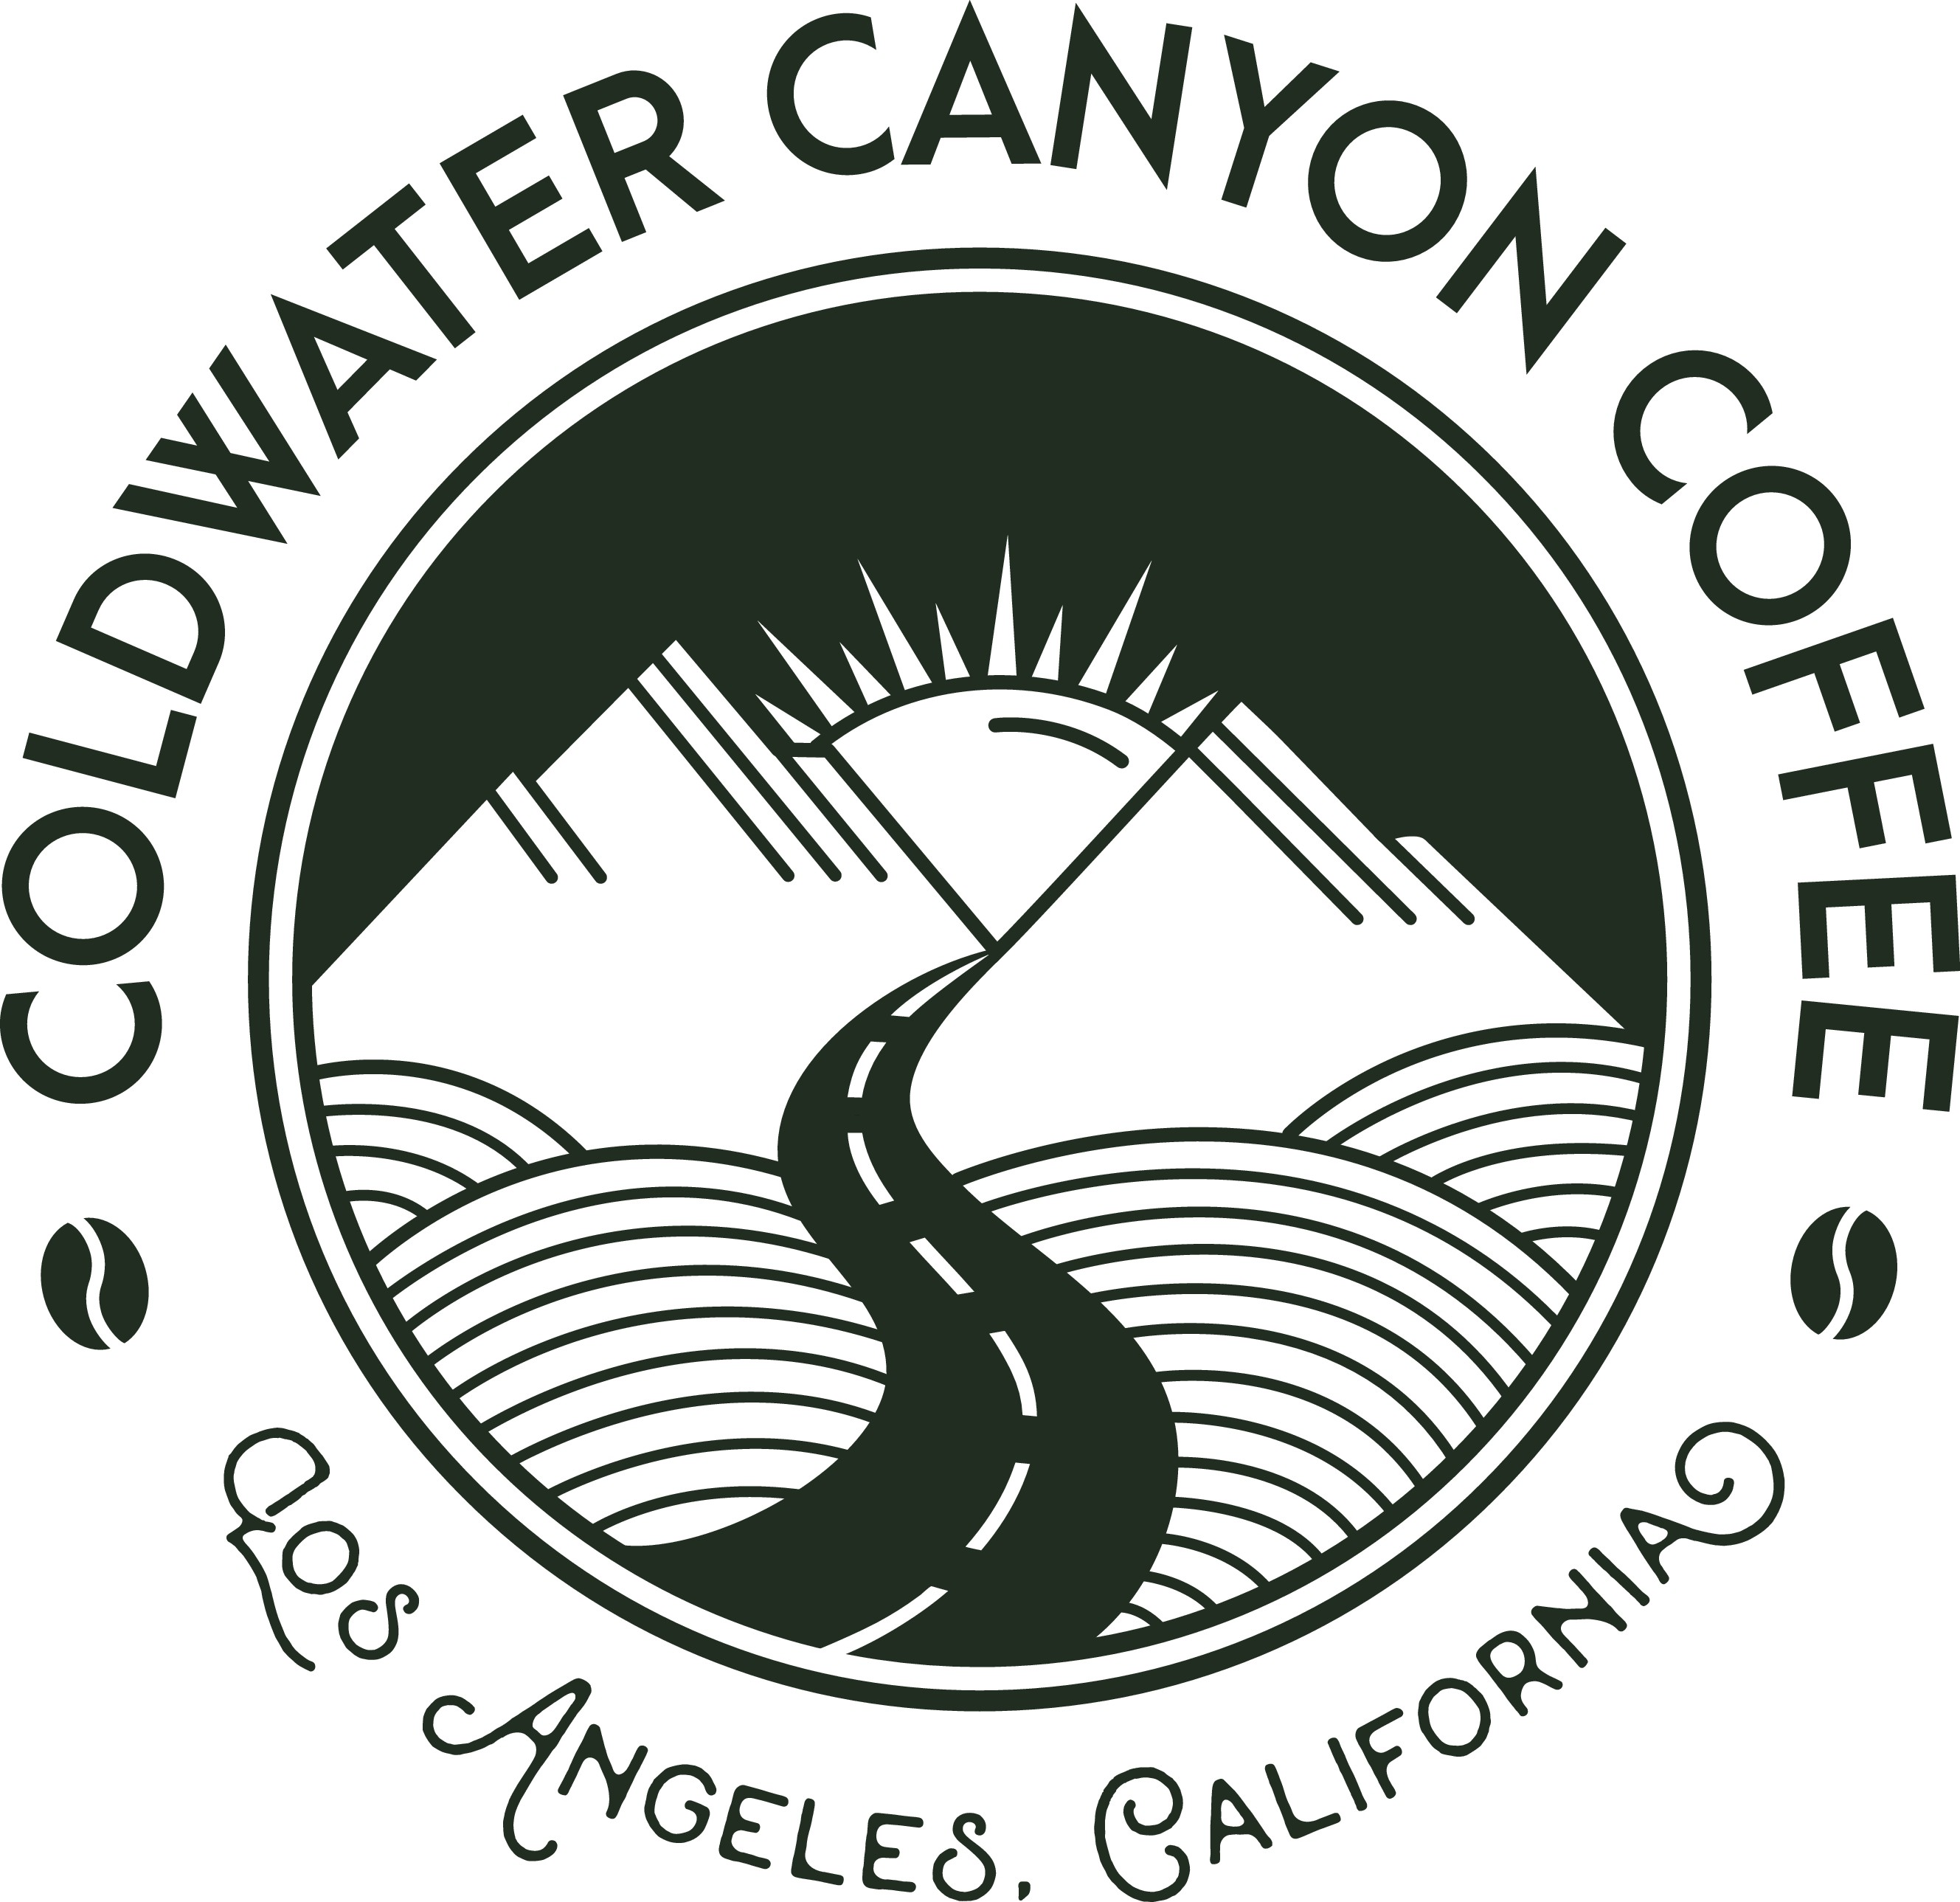 Create a logo for a natural cold brew coffee company based out of Los Angeles, California